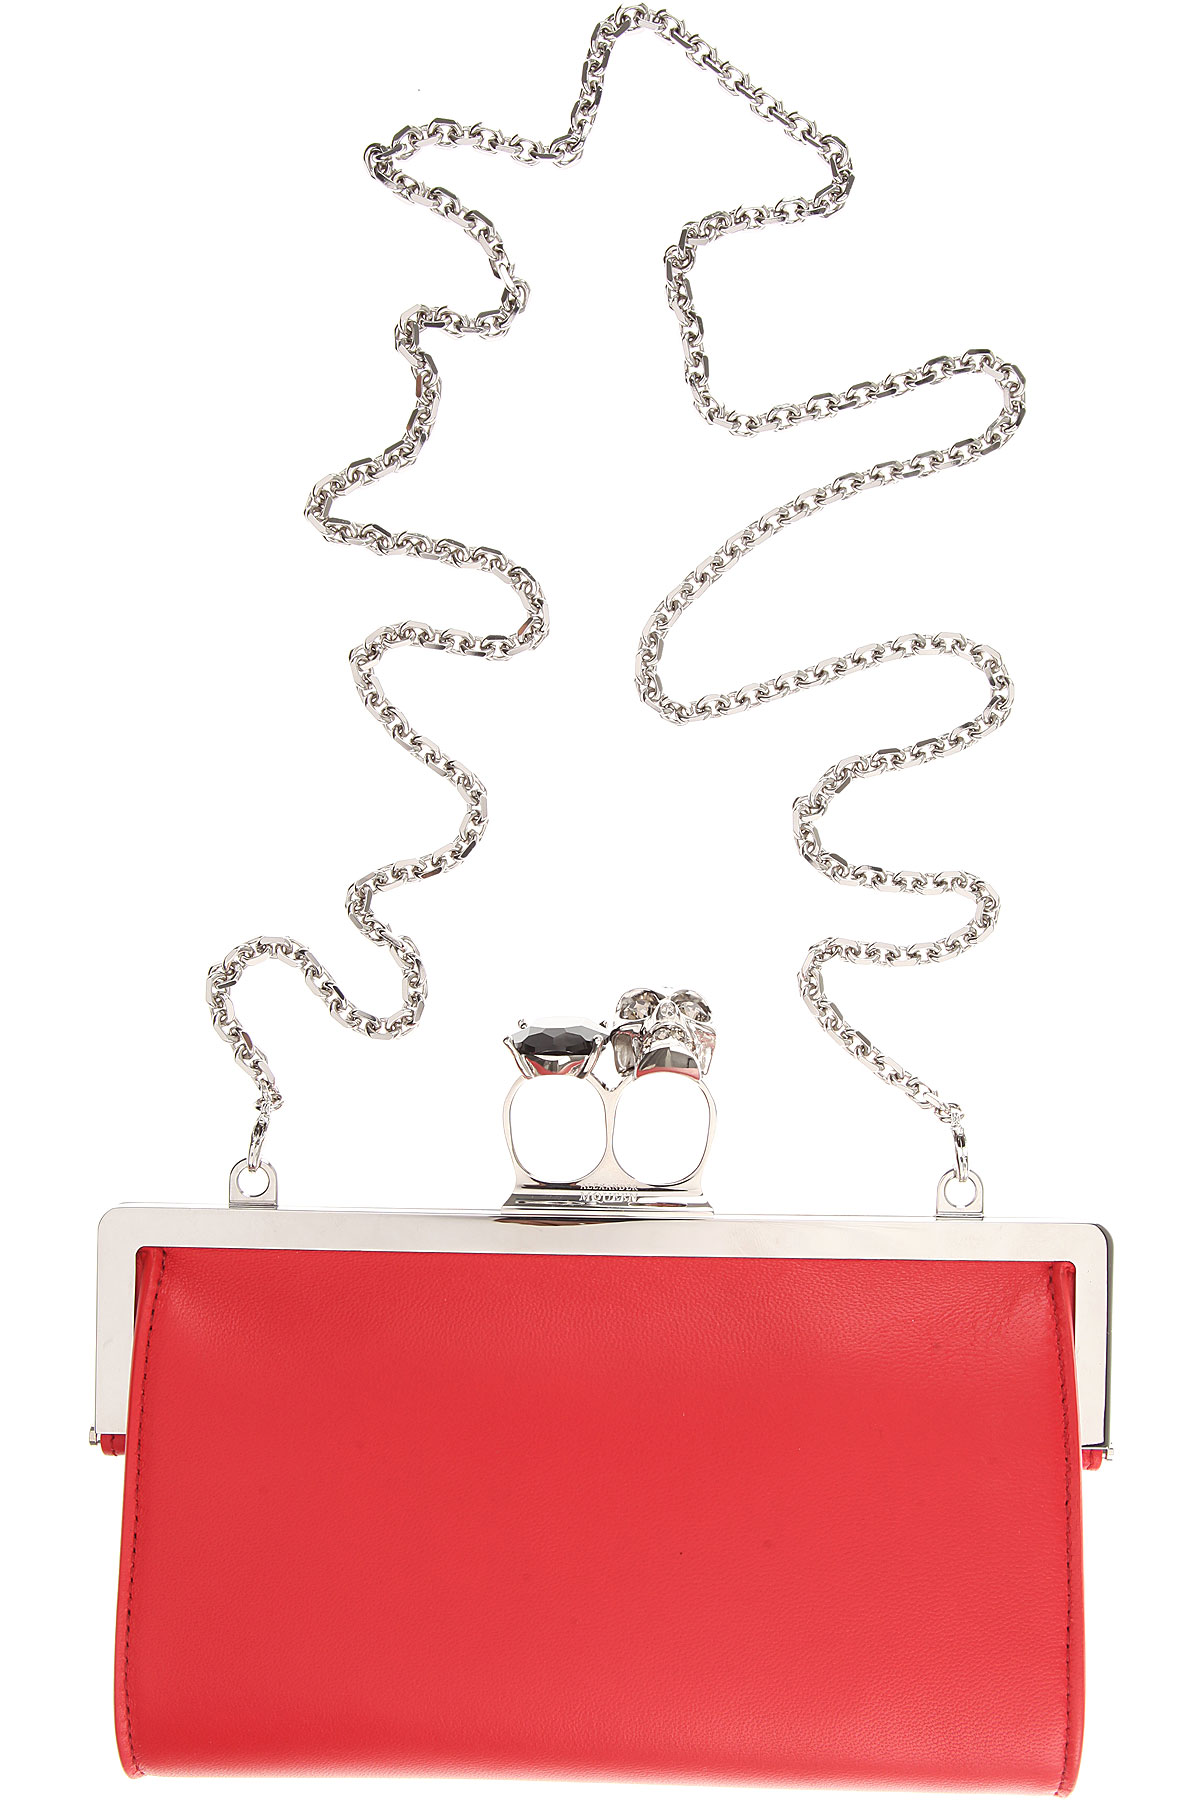 Image of Alexander McQueen Clutch Bag, Lust, Leather, 2017